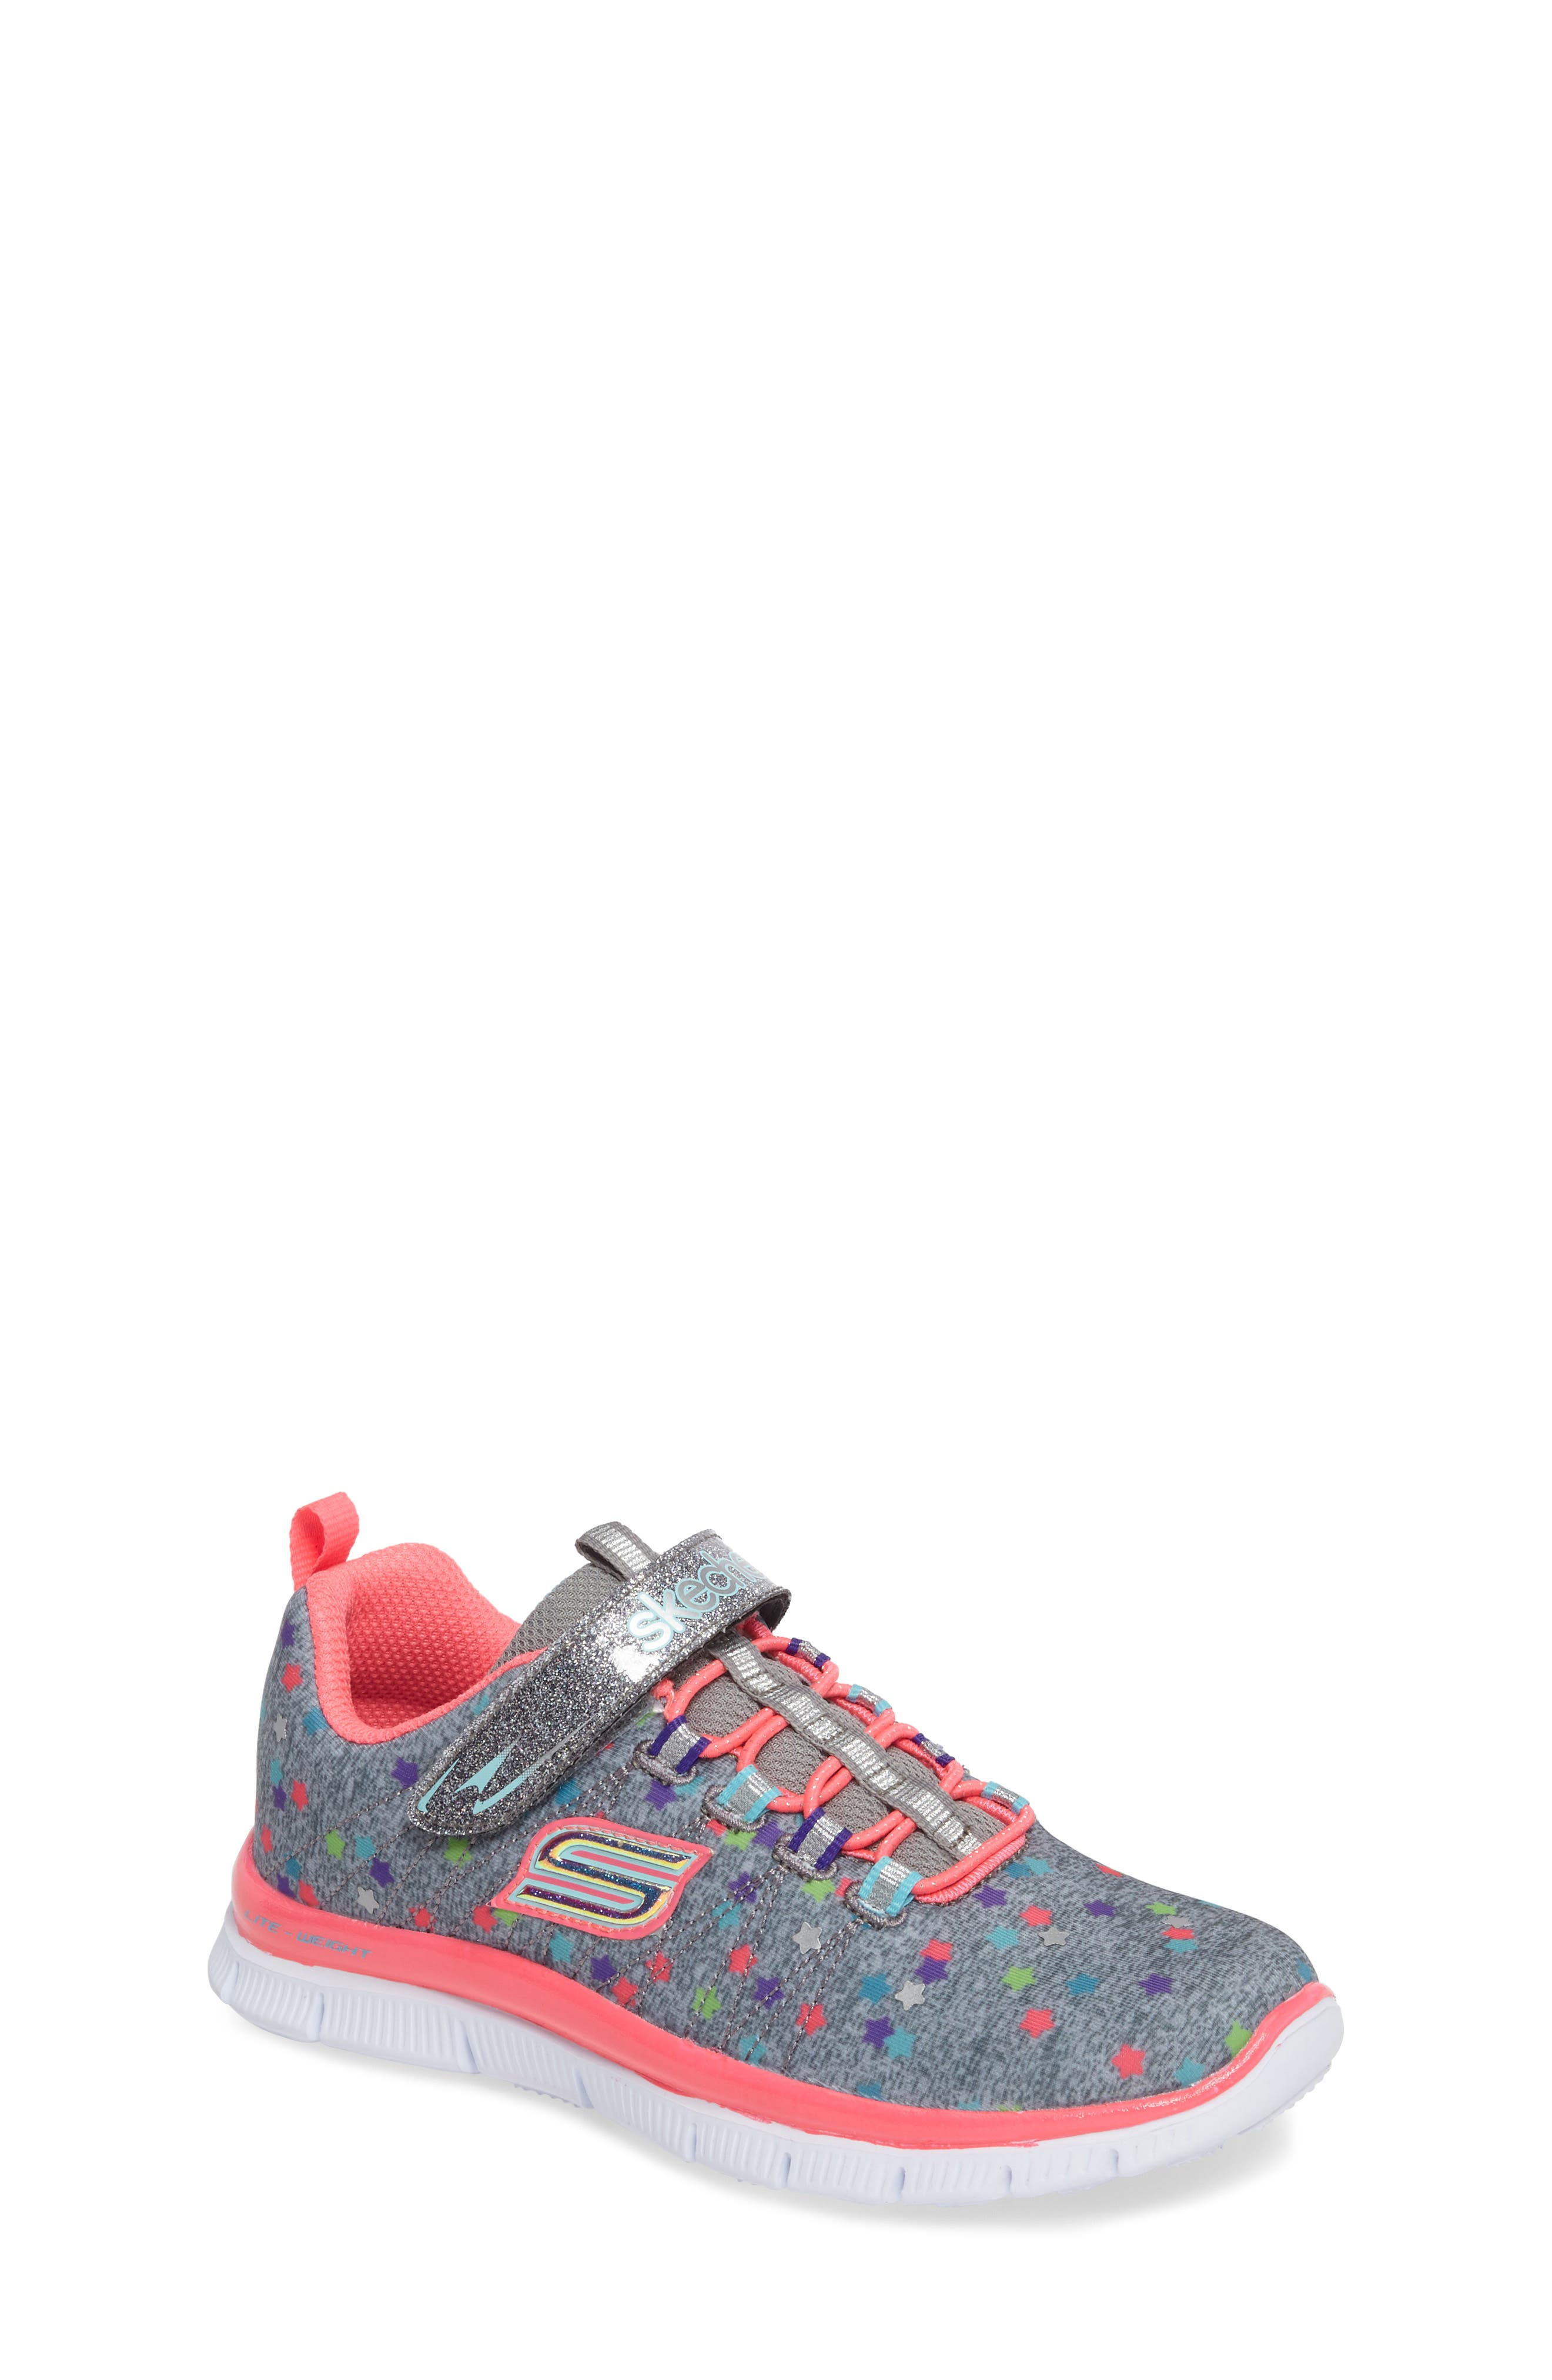 SKECHERS Skech Appeal Star Spirit Sneaker (Toddler, Little Kid & Big Kid)